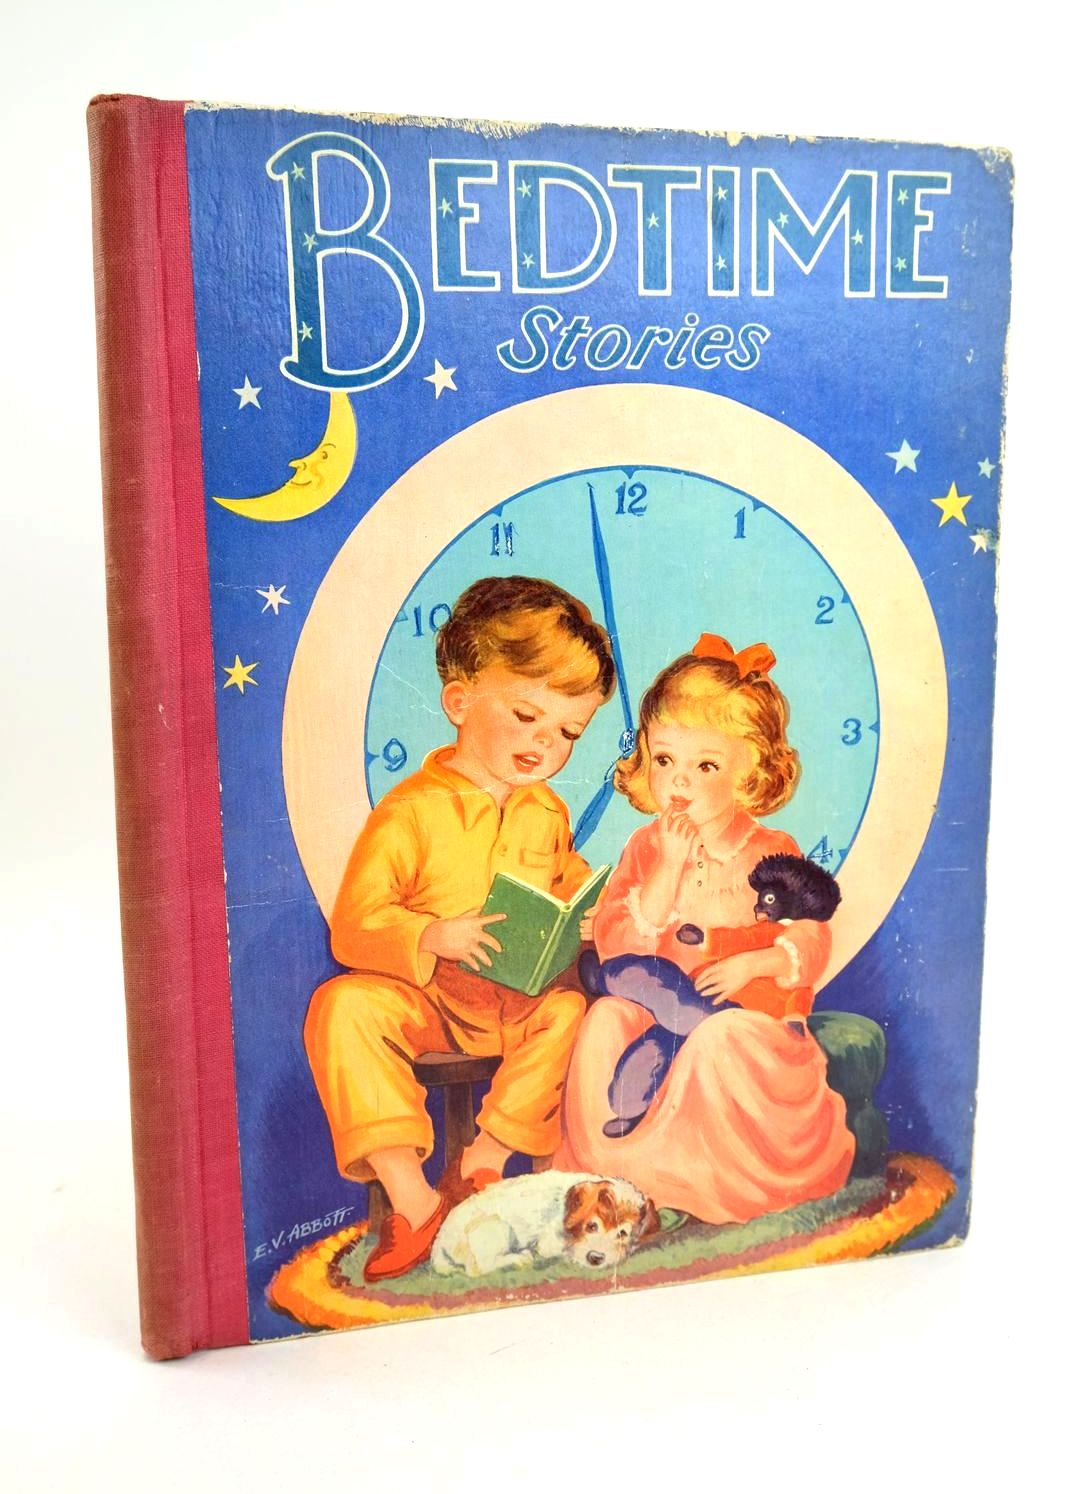 Photo of BEDTIME STORIES published by Birn Brothers Ltd. (STOCK CODE: 1318932)  for sale by Stella & Rose's Books